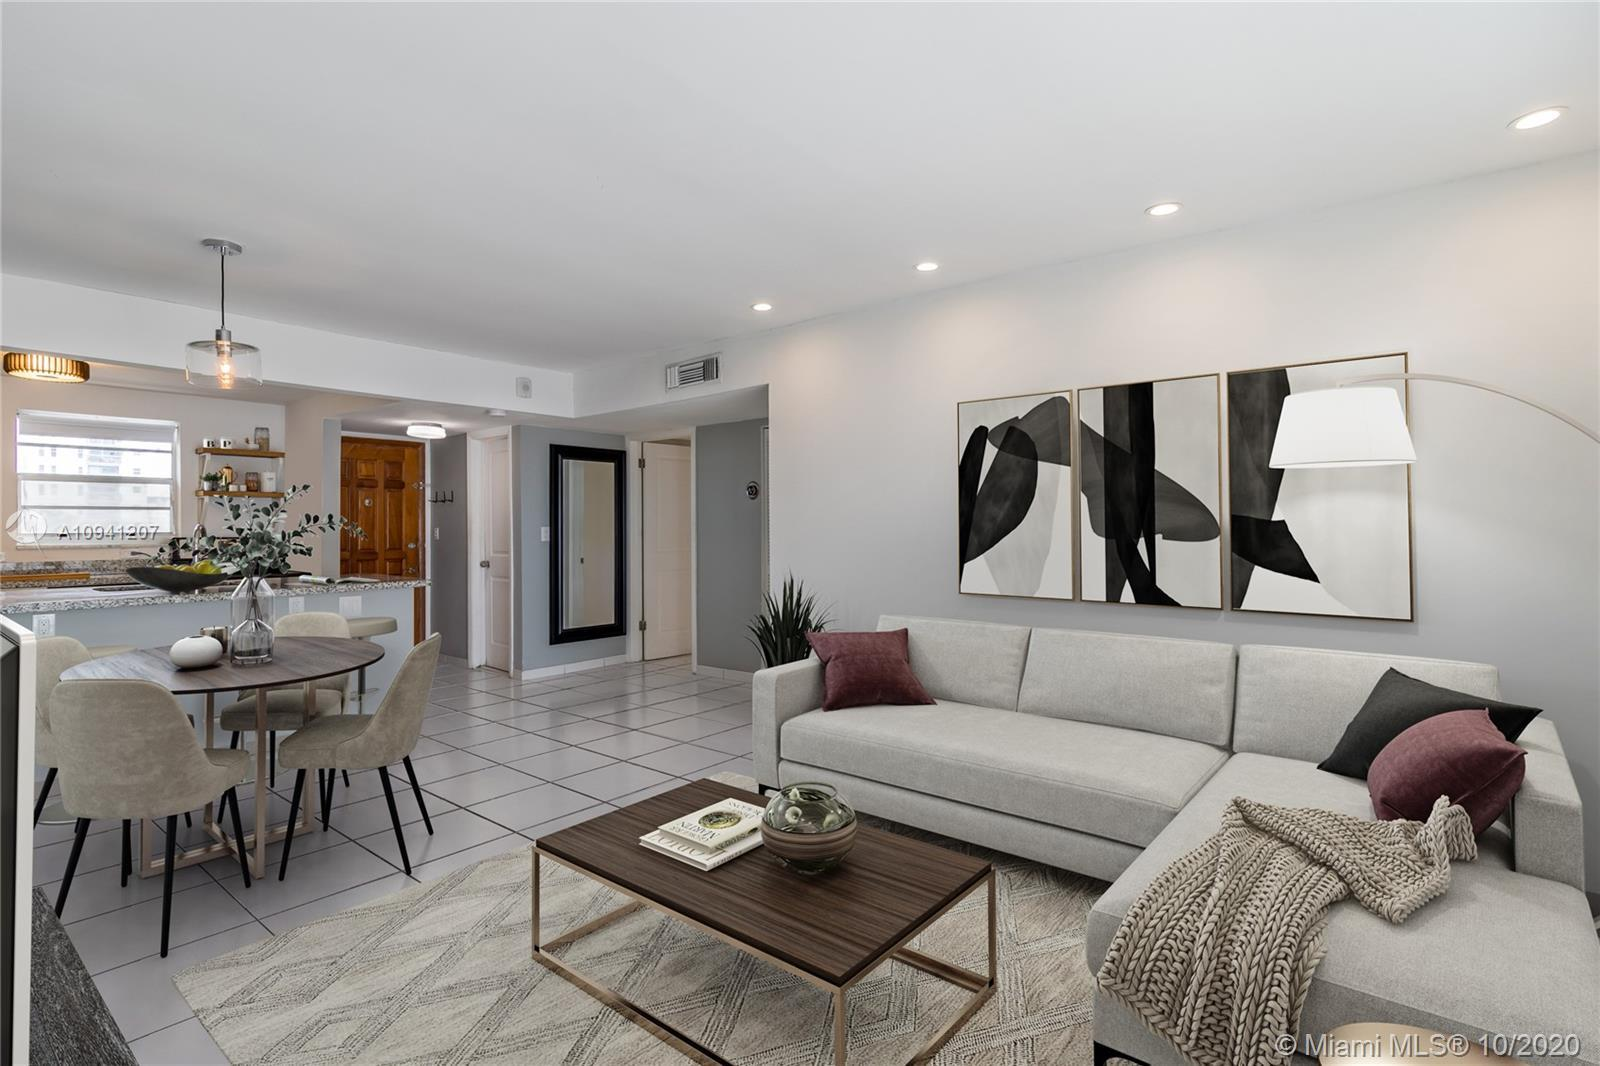 Sophisticated modern style in this beautifully updated 2 bedroom 2 bath residence with open kitchen,